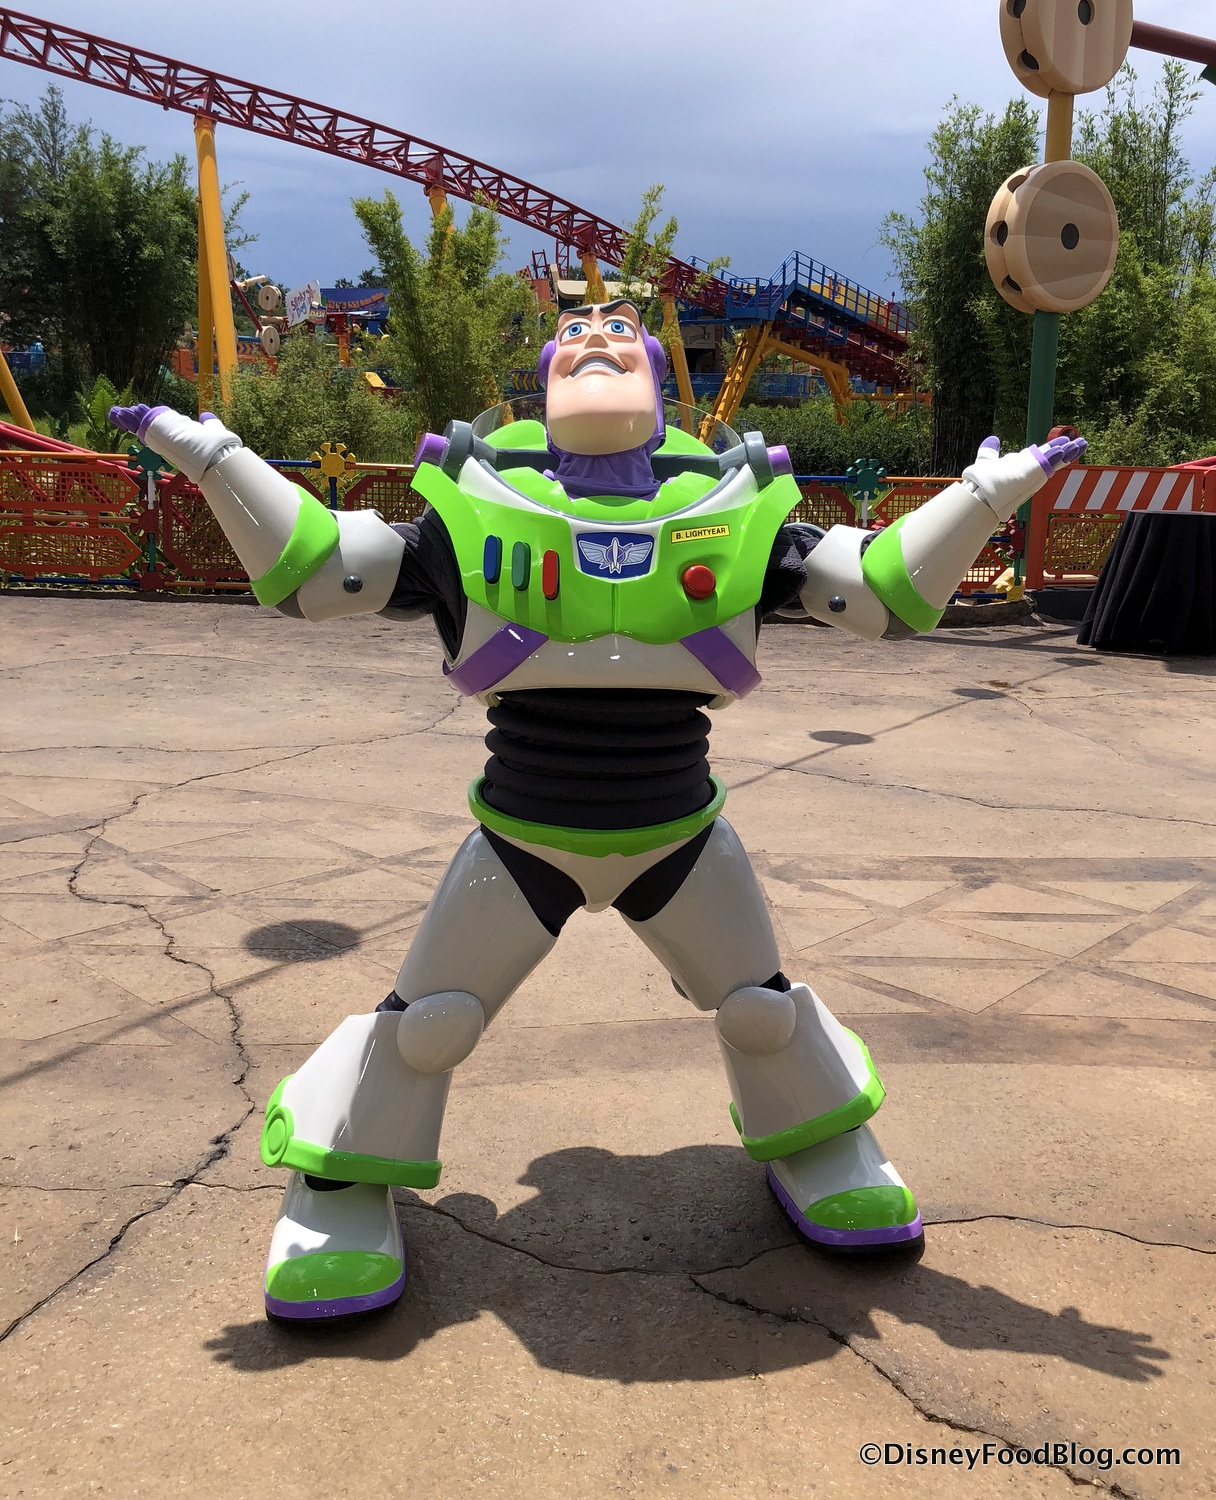 World Of Buzz: Toy Story Land In Disney World's Hollywood Studios